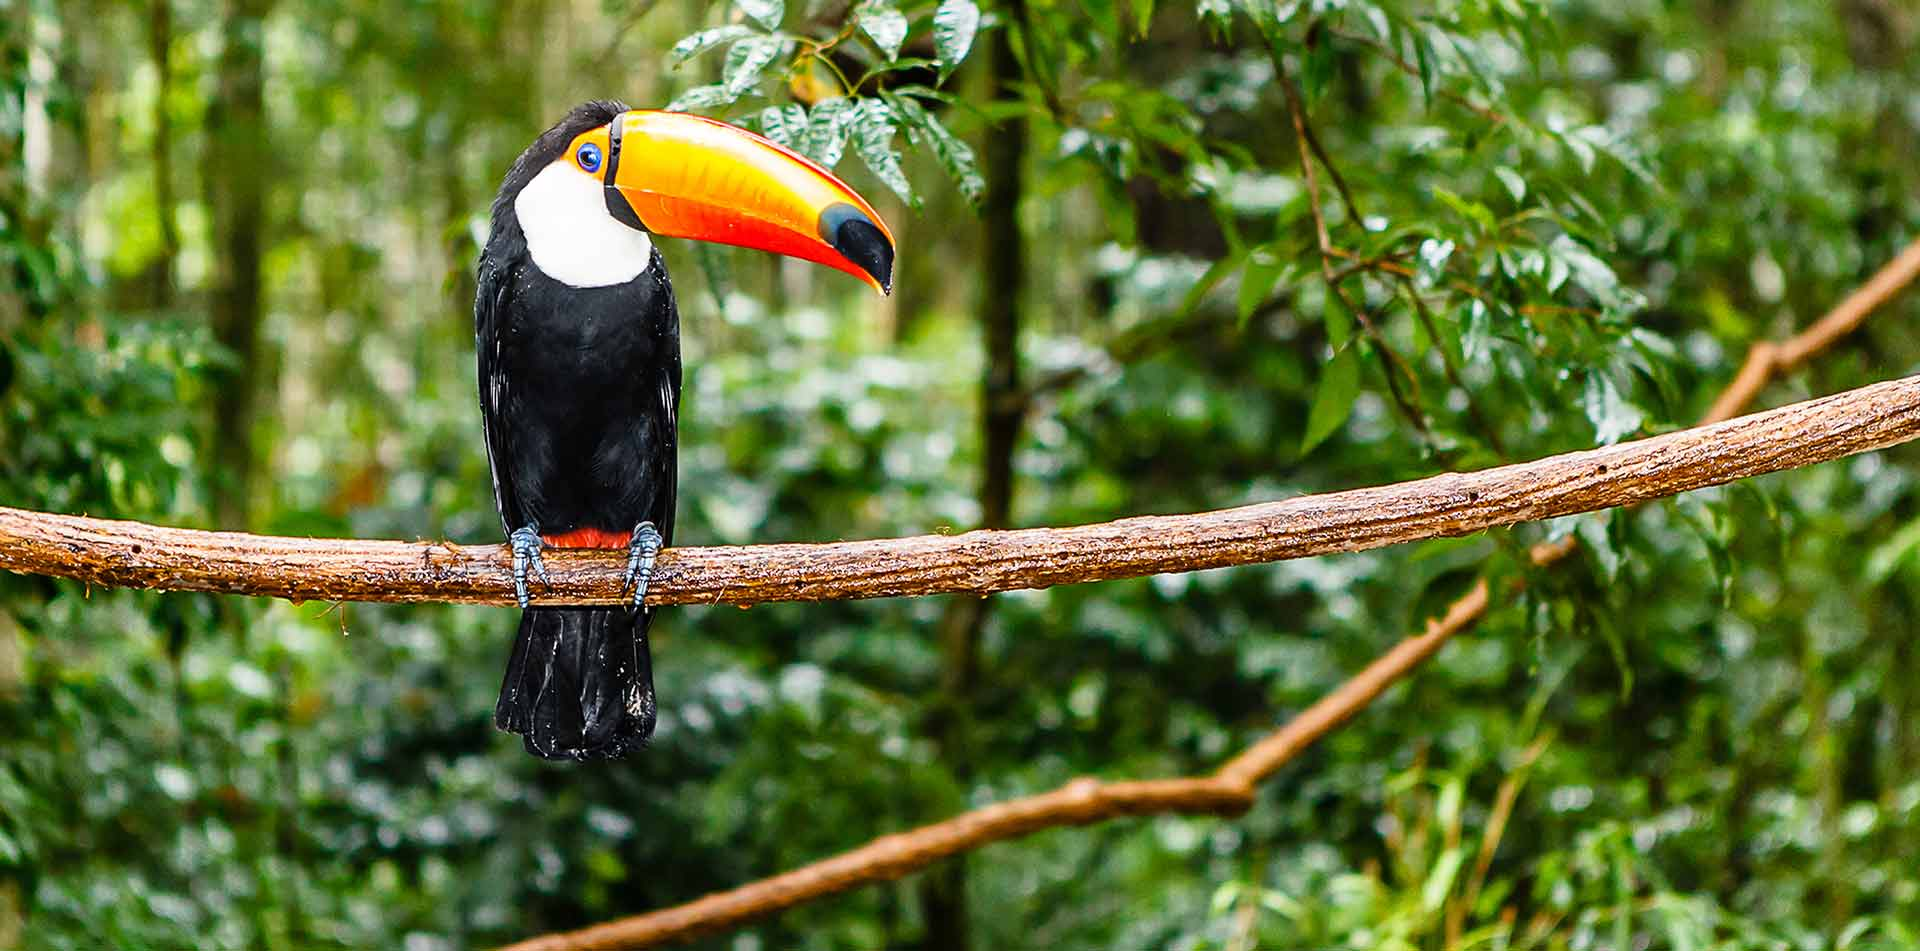 South America Peru toucan on a branch in the Peruvian Amazon rainforest - luxury vacation destinations